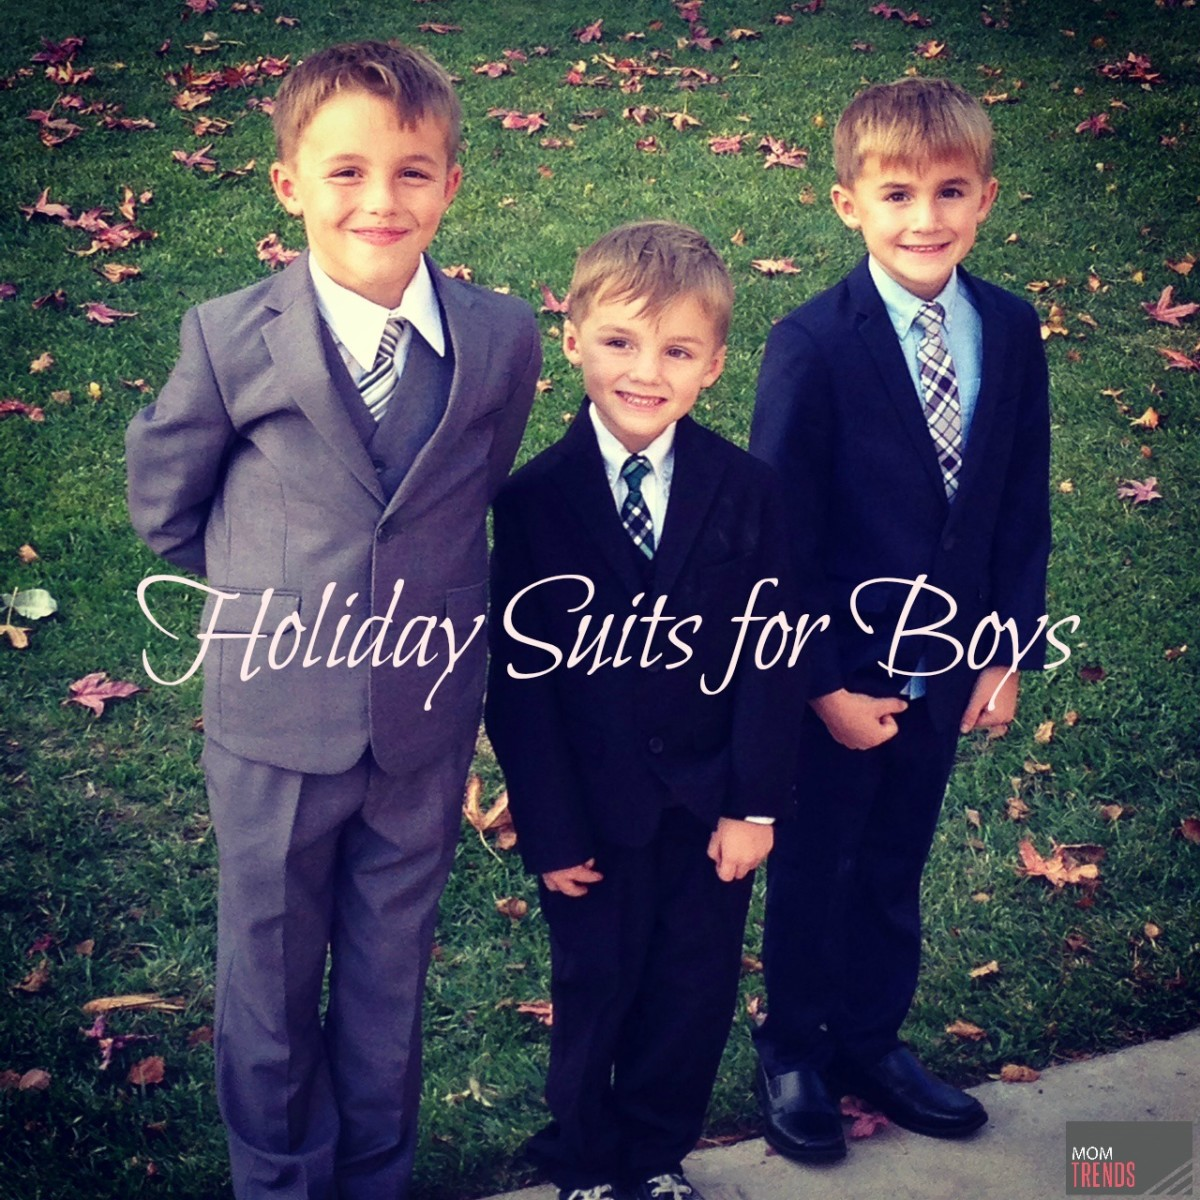 Holiday Suits for Boys